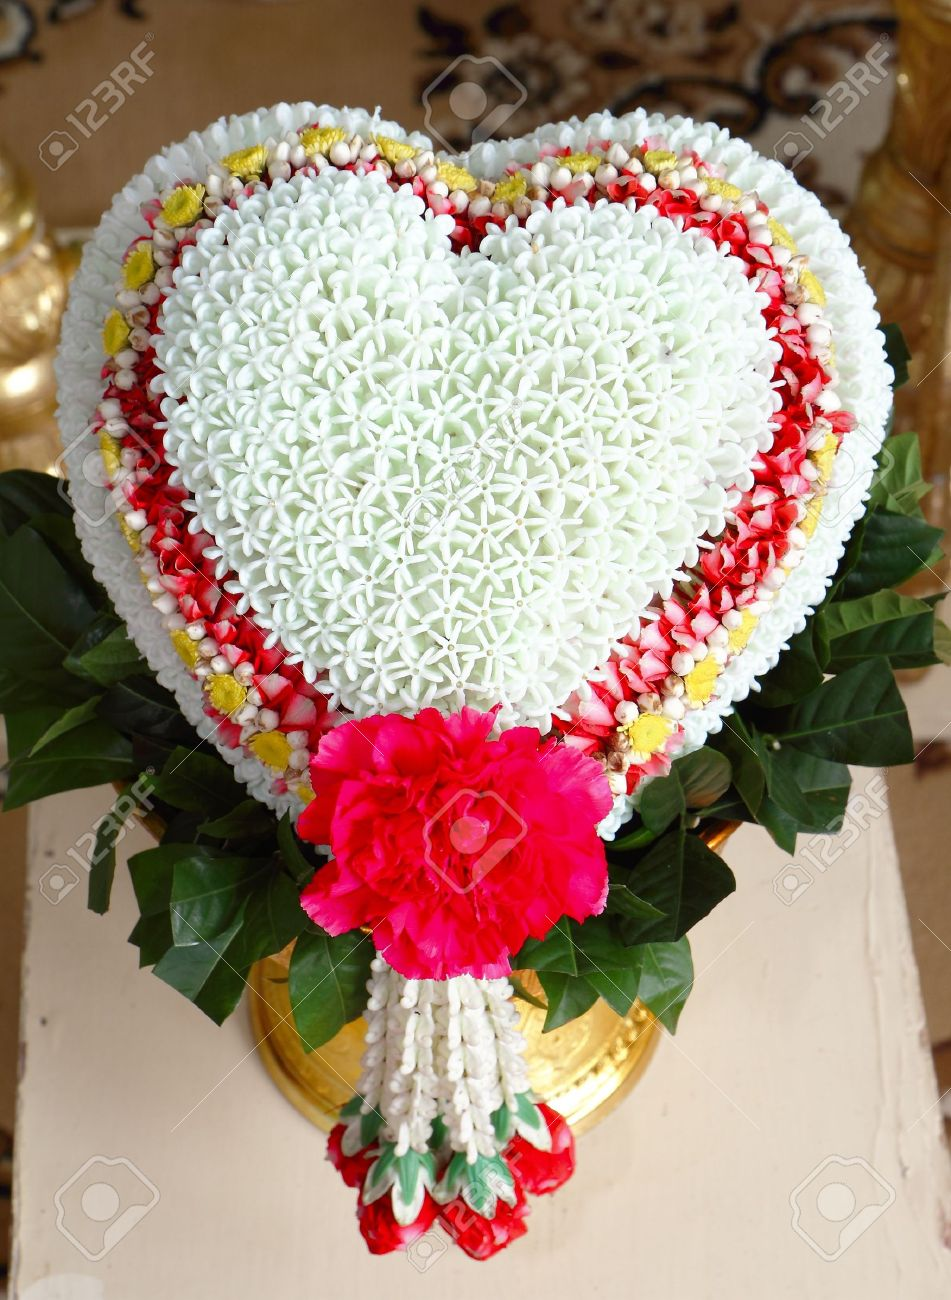 Thai Flower Heart Shaped Garland On Golden Tray With Pedestal